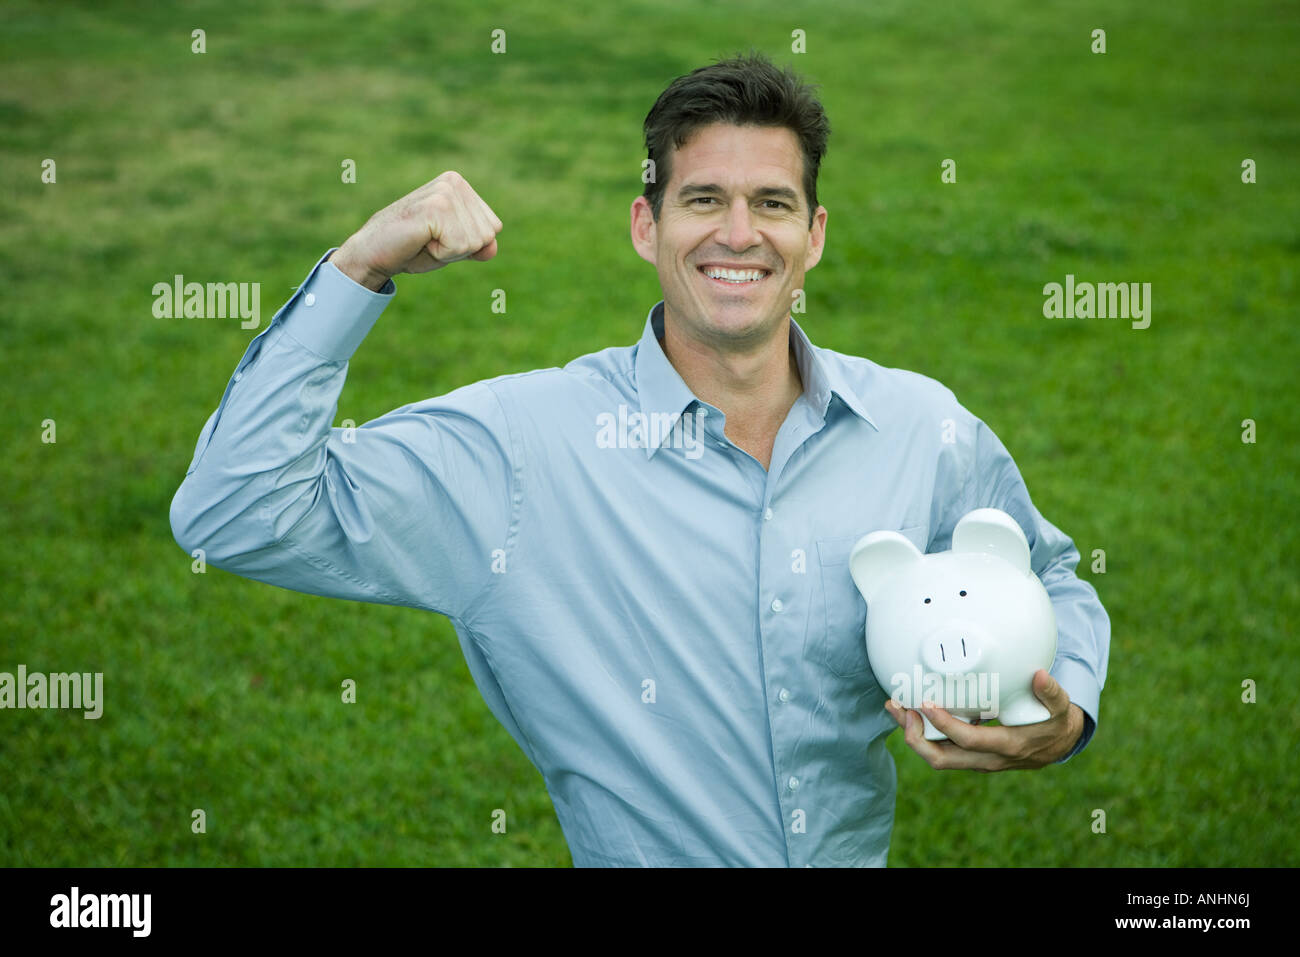 Man holding piggy bank, raising fist and smiling at camera - Stock Image